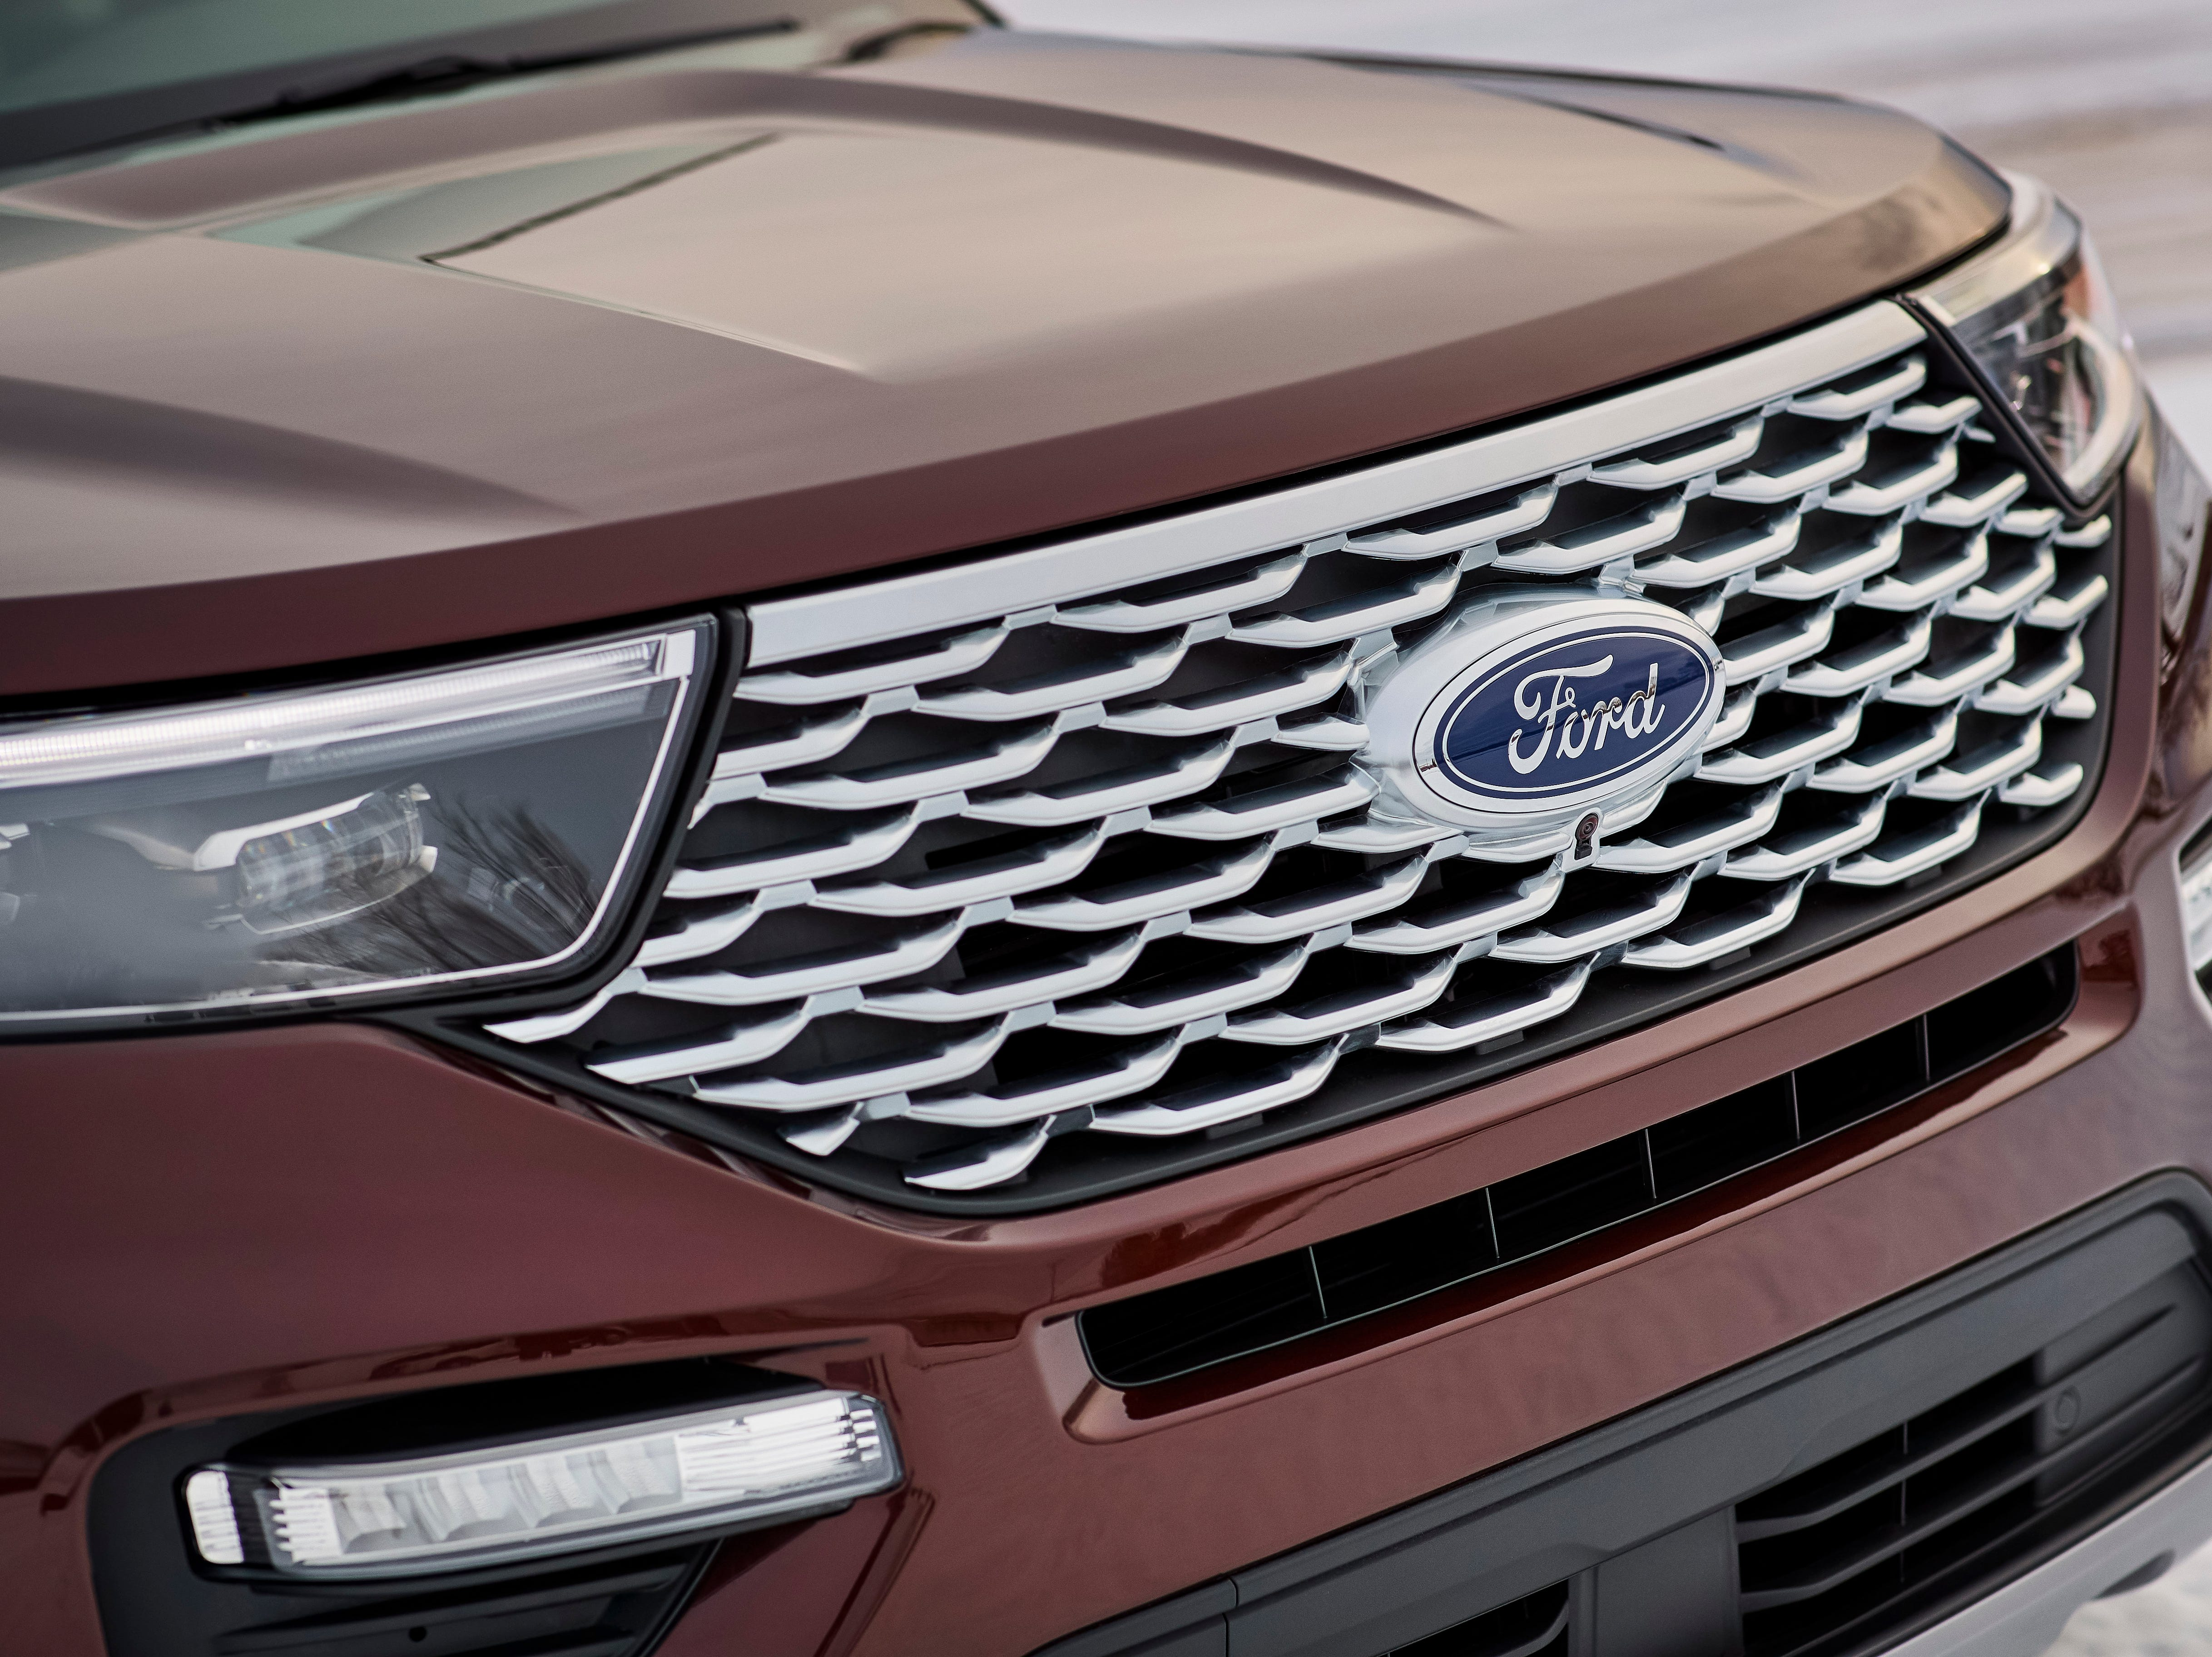 This is the 2020 Ford Explorer Platinum model.